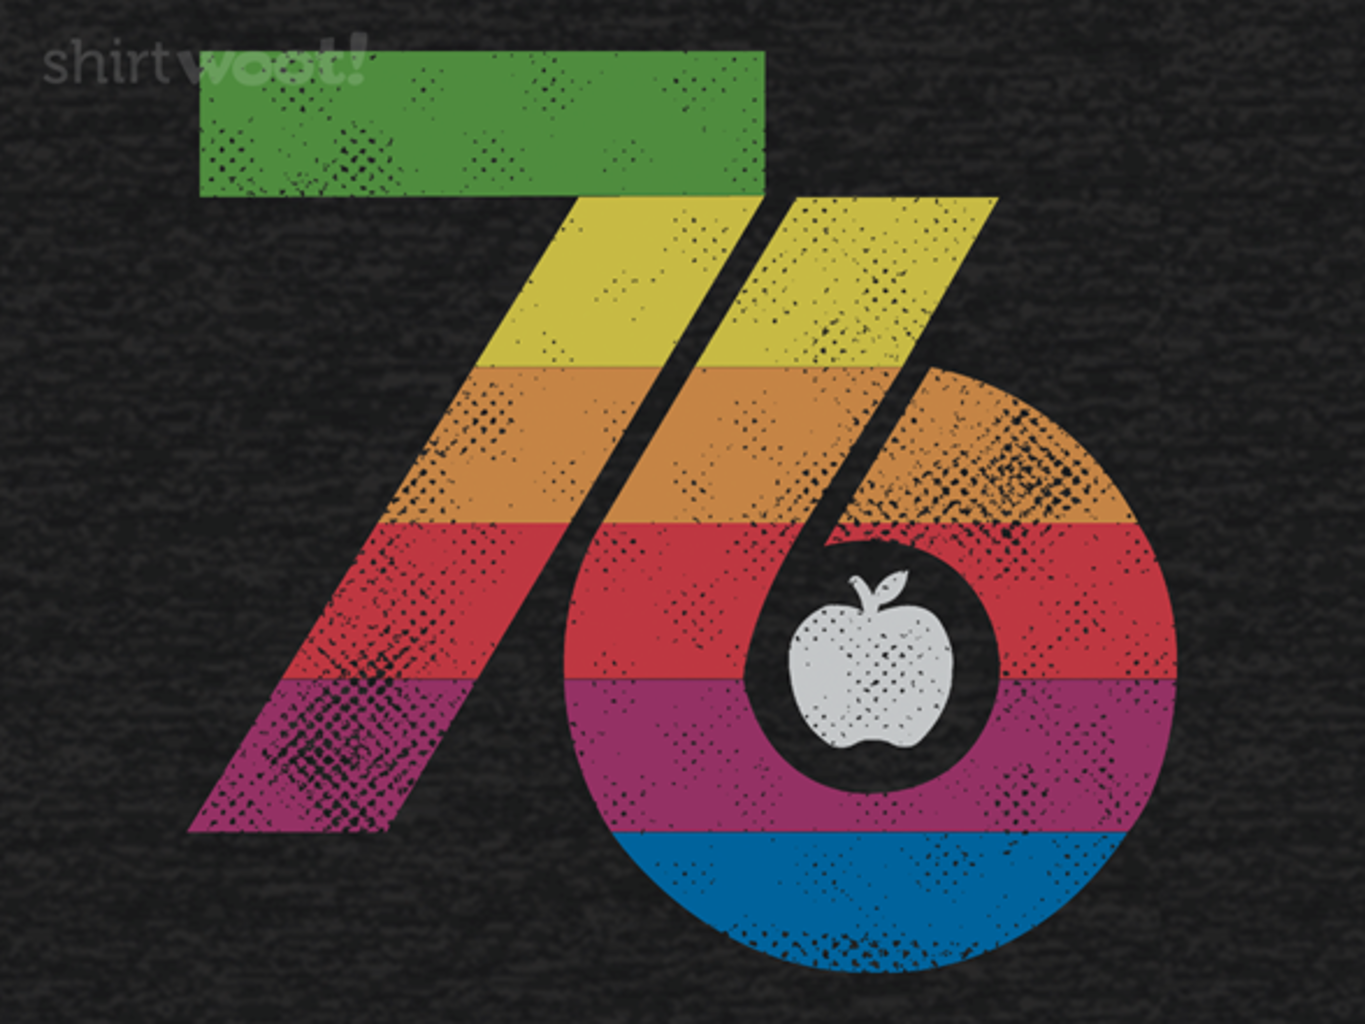 Woot!: 1976: Fruit Company Founded